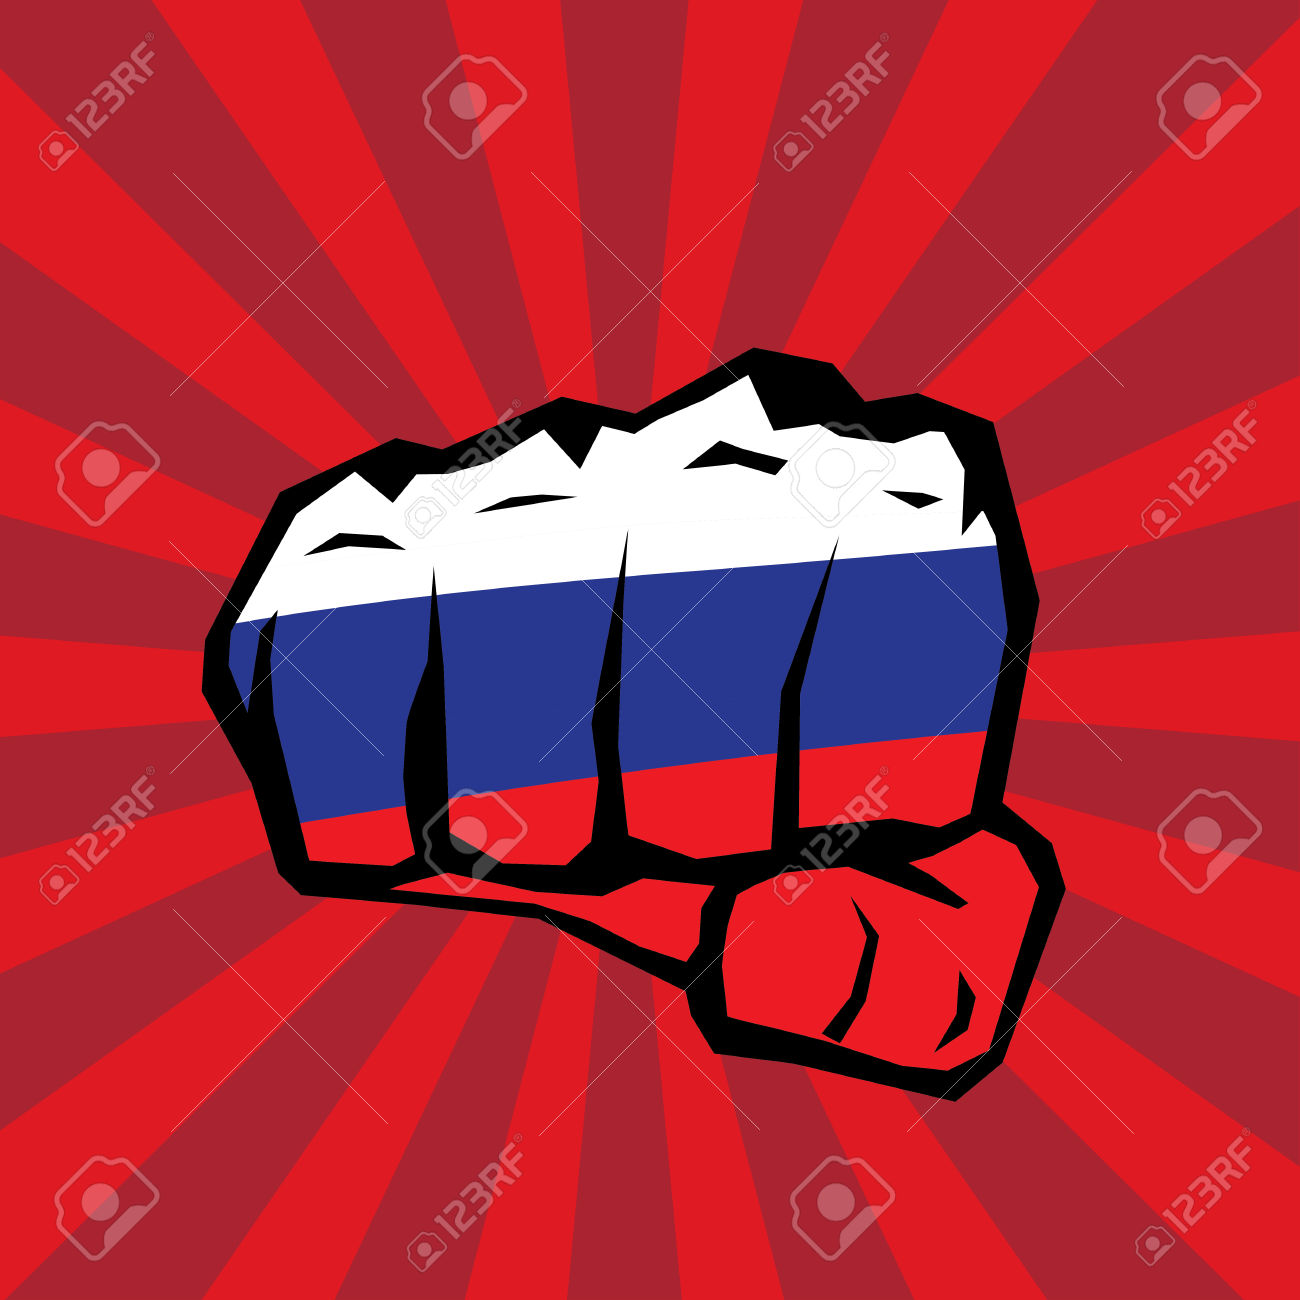 Vector Fist Icon. Fist Colored In Russian Flag Color Royalty Free.